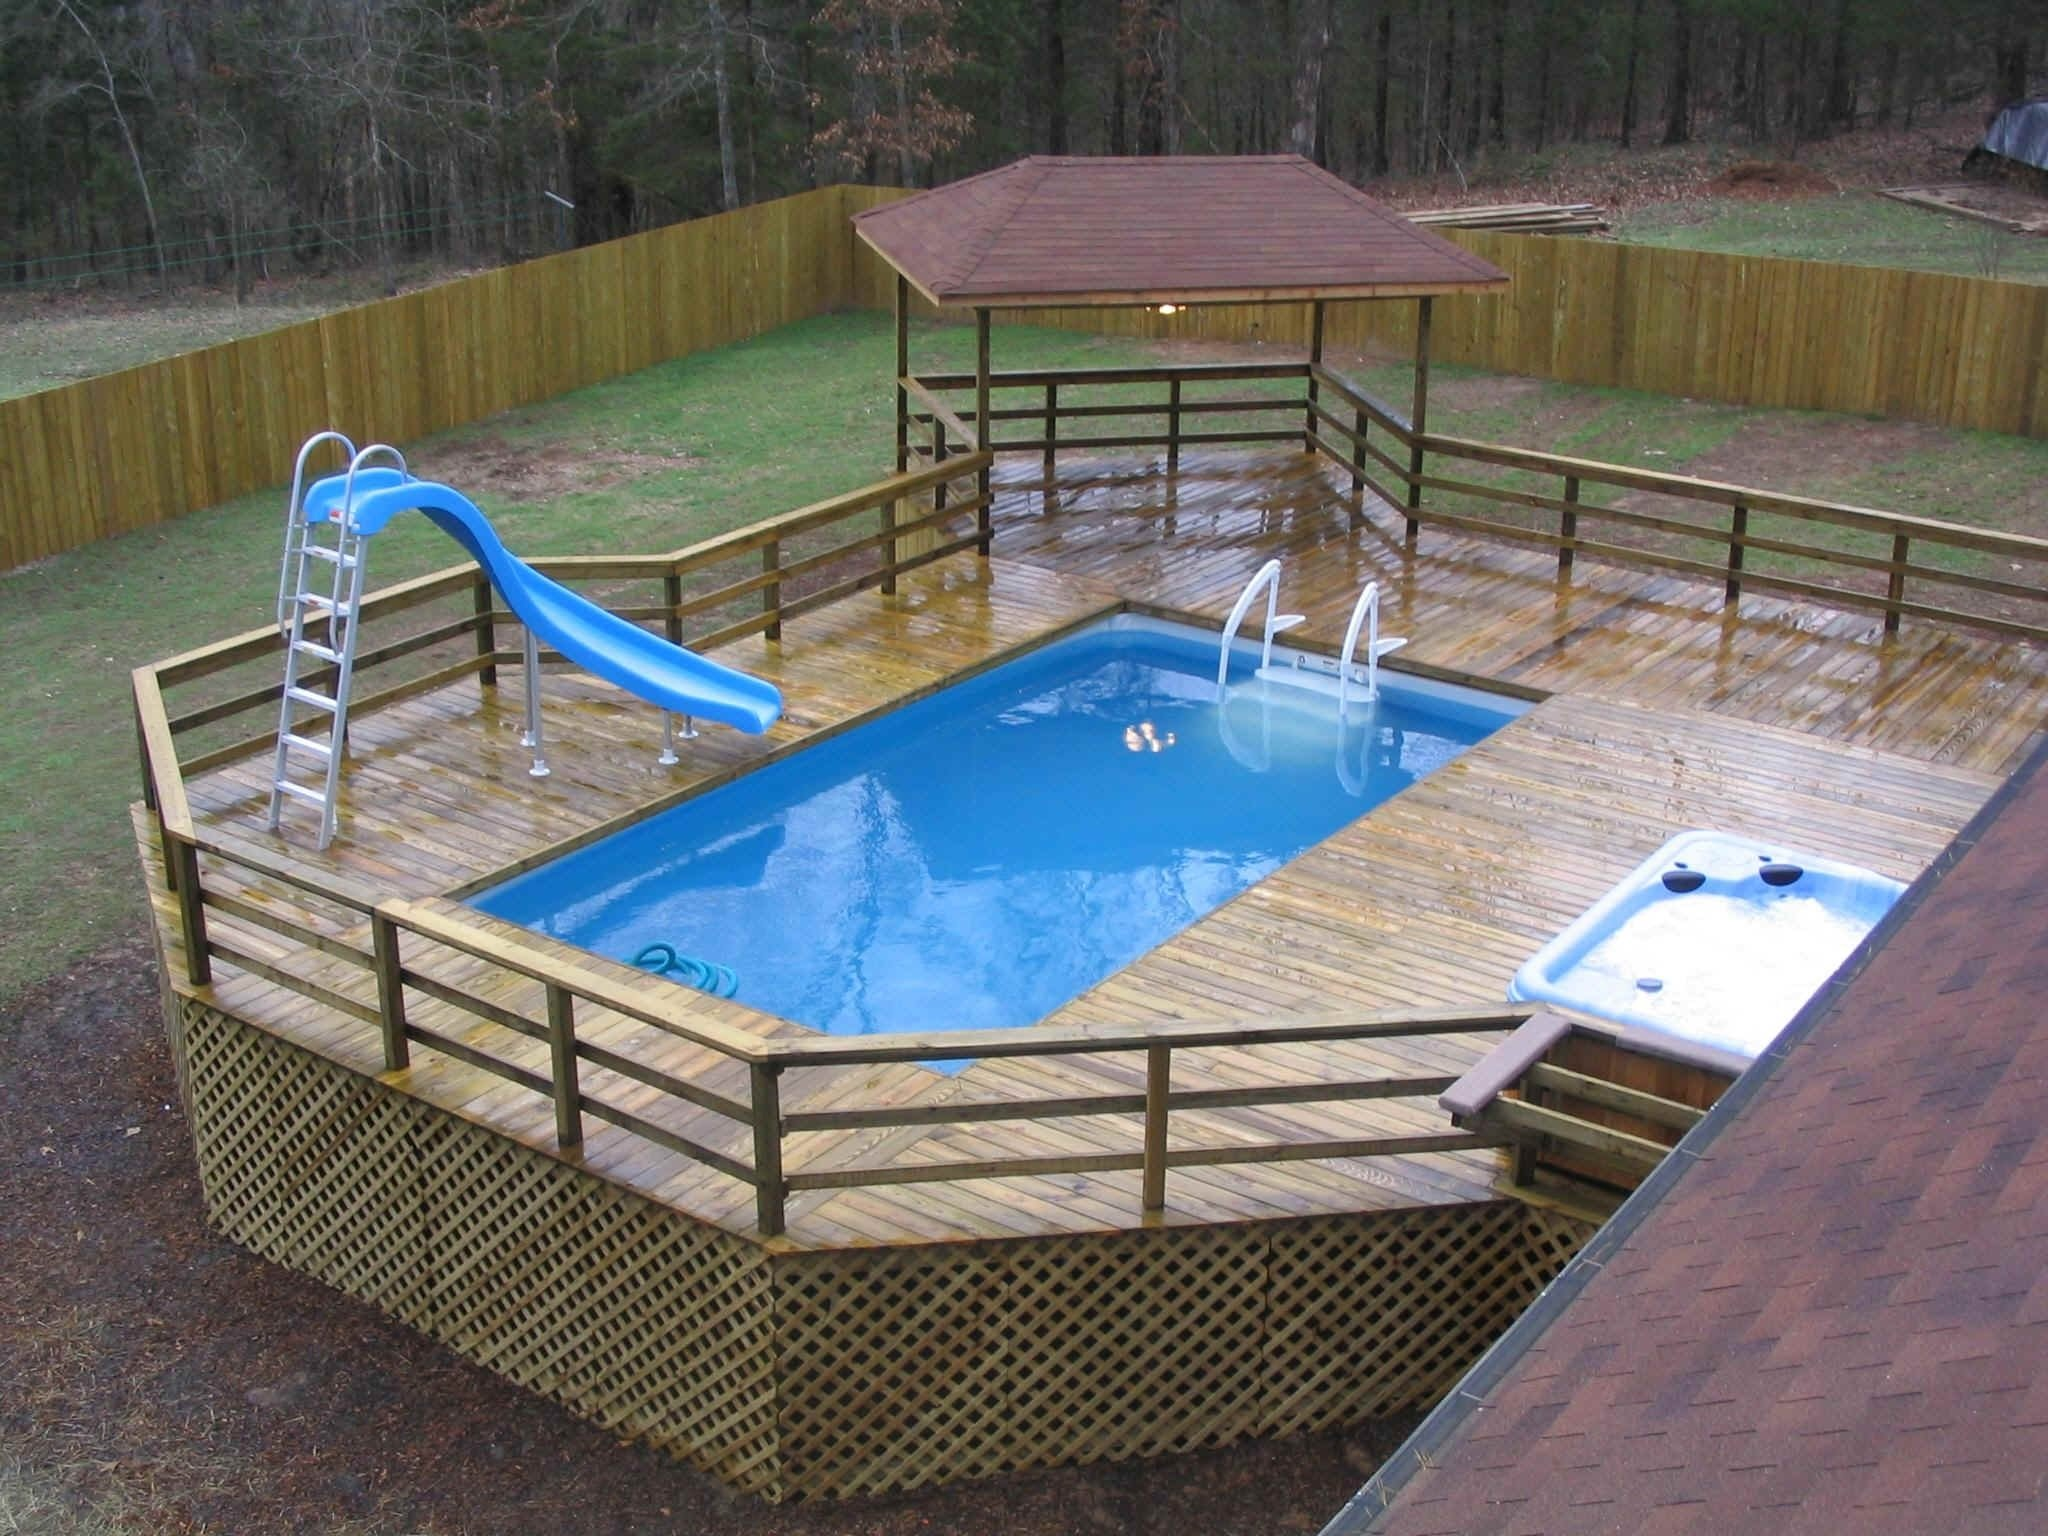 10 Most Popular Above Ground Pool Ideas Backyard above ground pool designs cedar wood decking temeculavalleyslowfood